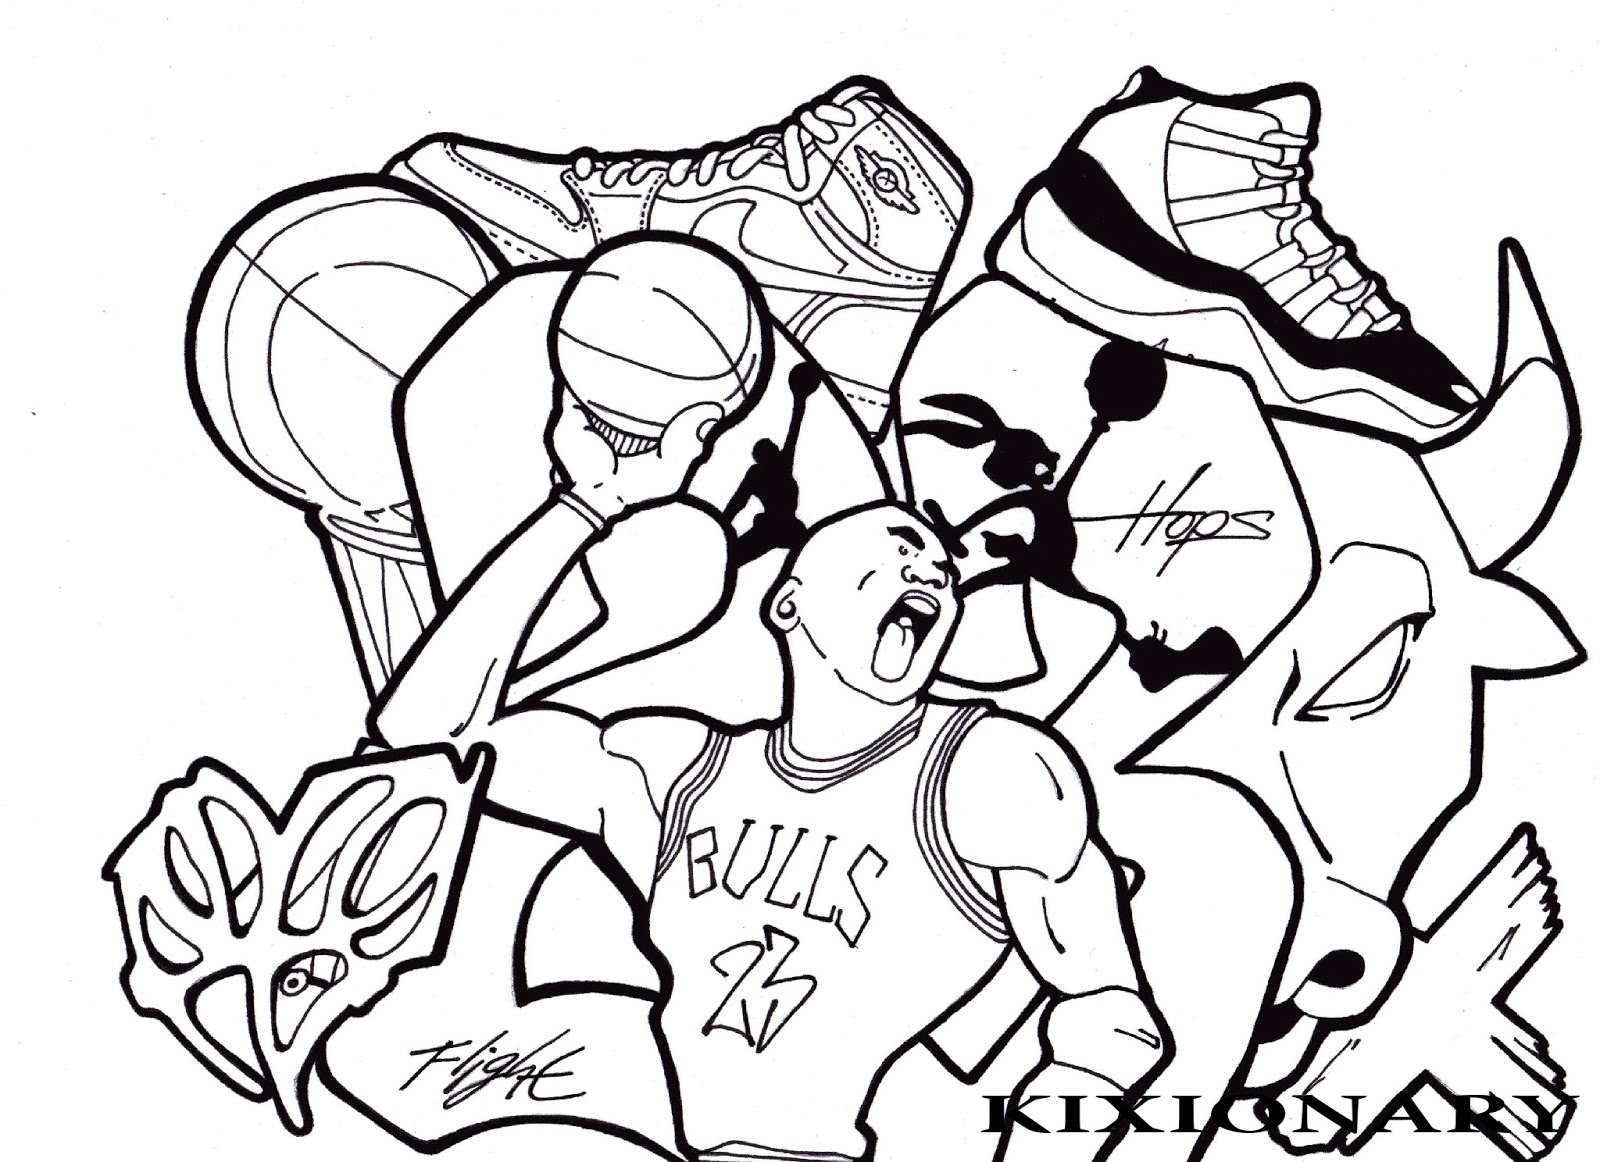 Miami Heat Coloring Page Printable Basketball Coloring Pages